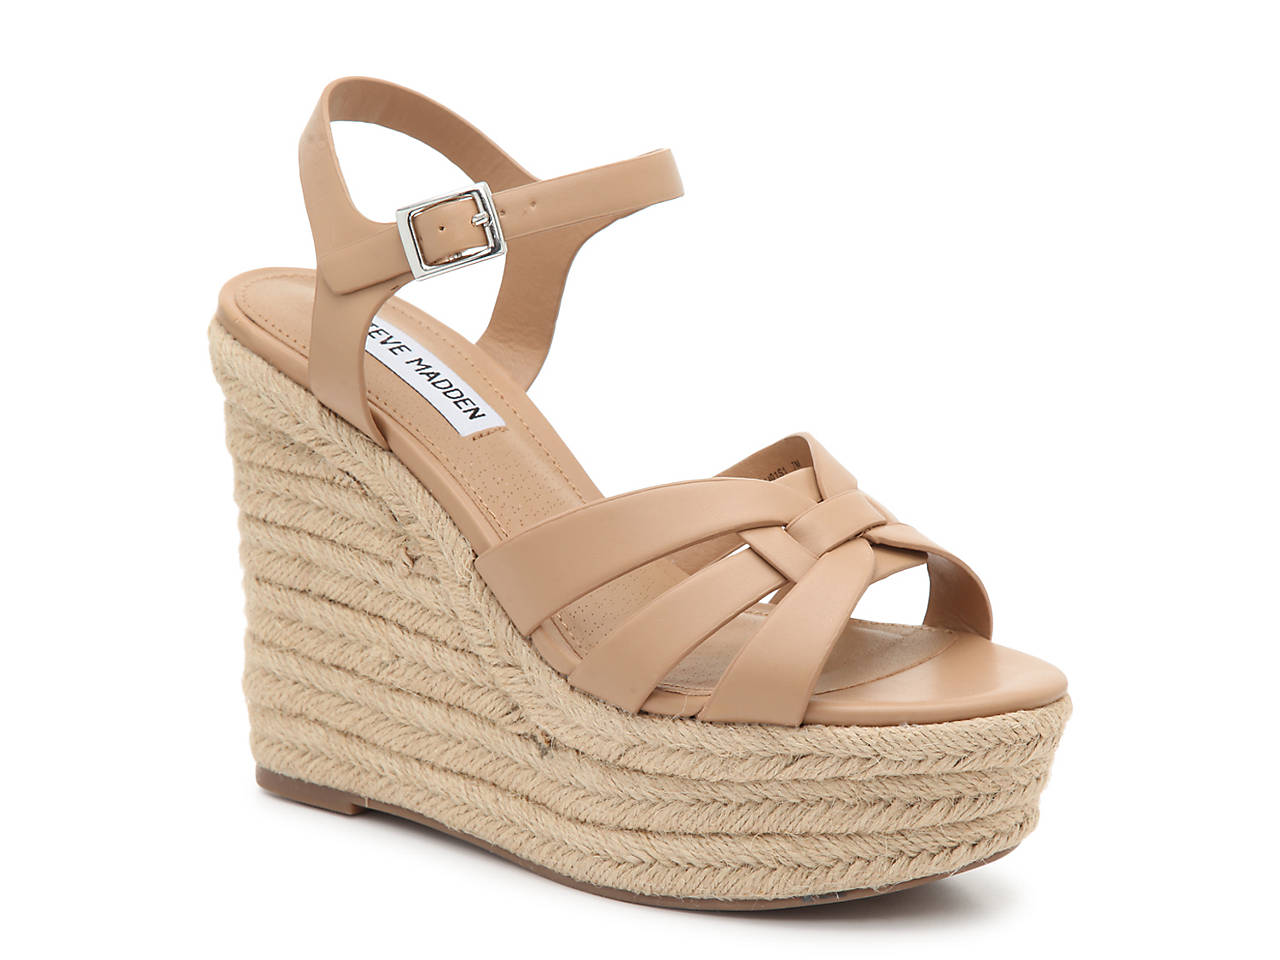 3620aceed9ac1 Steve Madden Talula Espadrille Wedge Sandal Women's Shoes | DSW